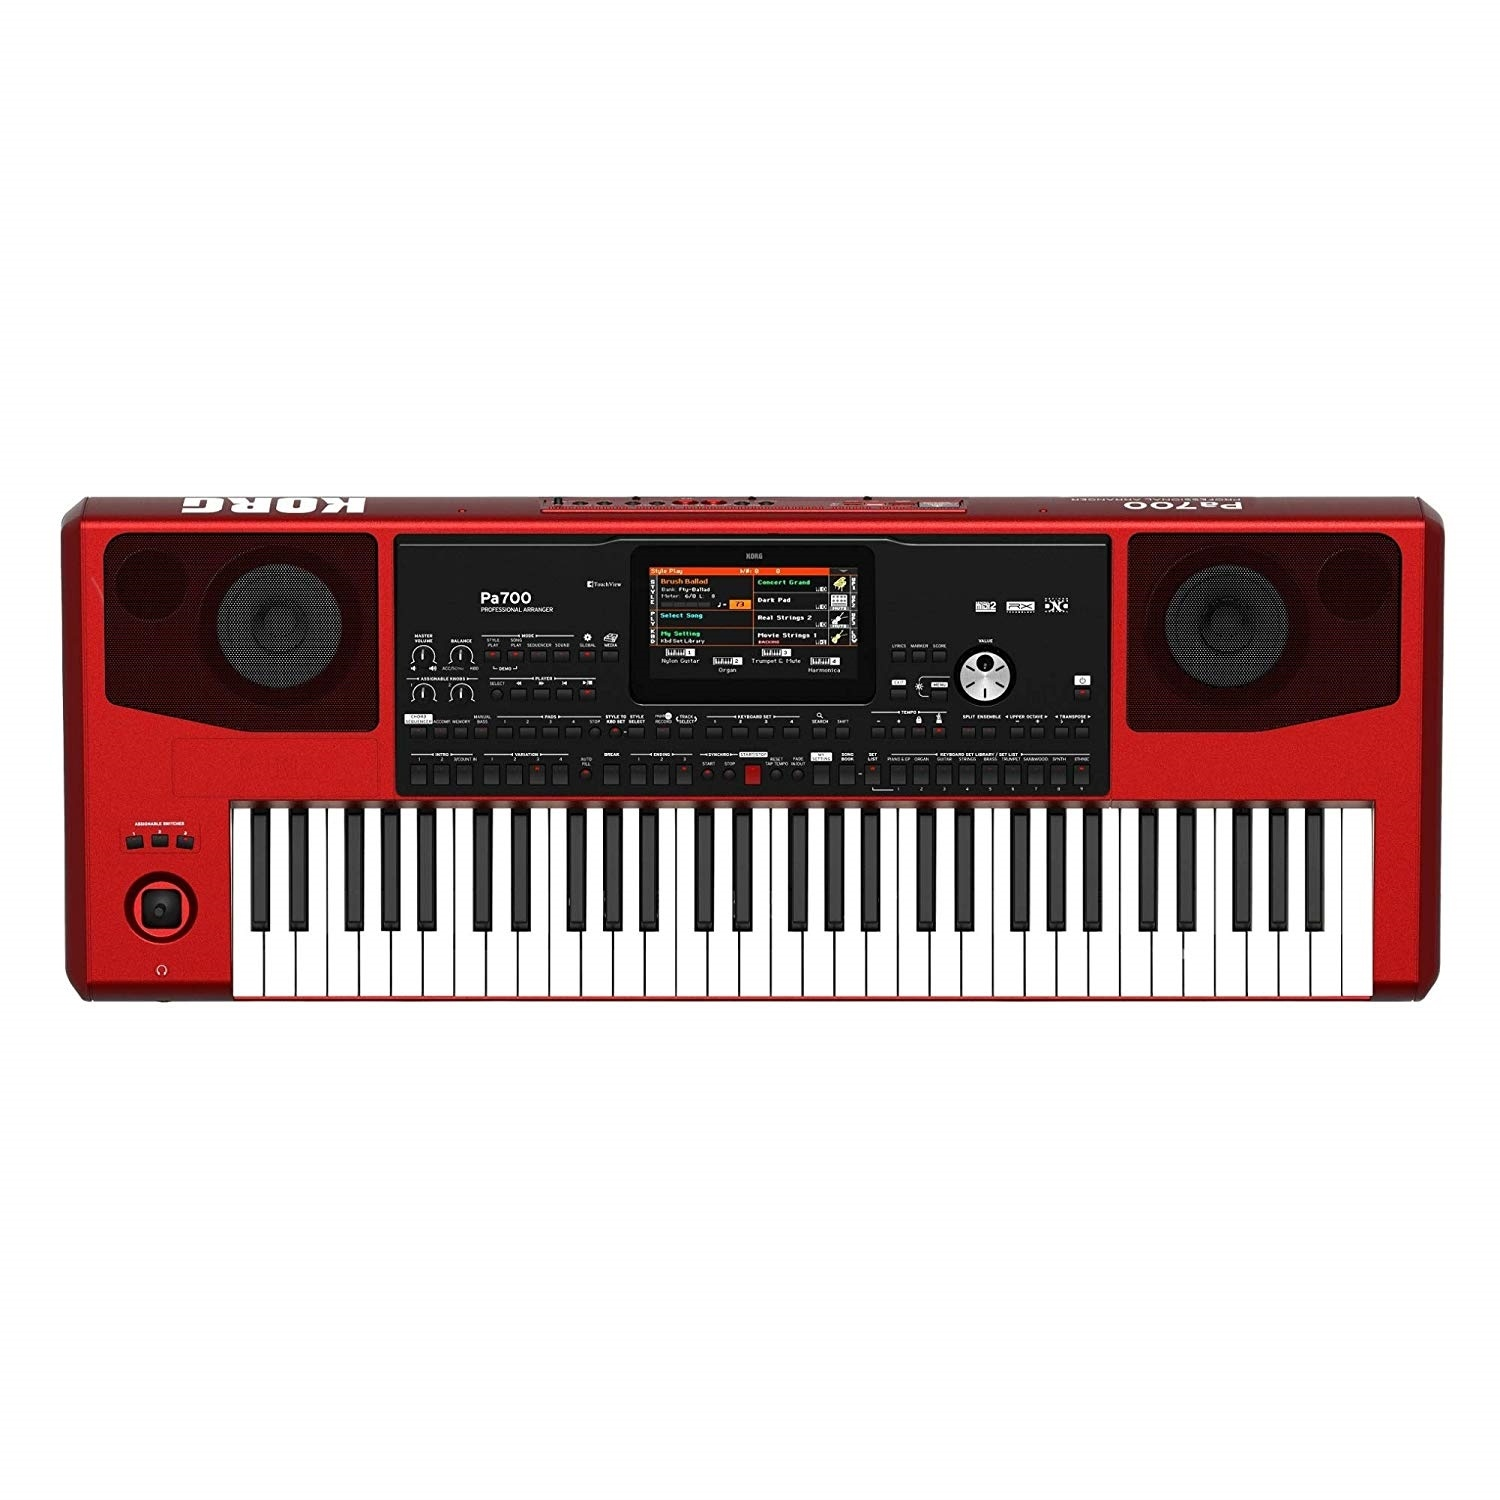 Korg Pa700 61-Key Professional Arranger with Touchscreen and Speakers (Red)